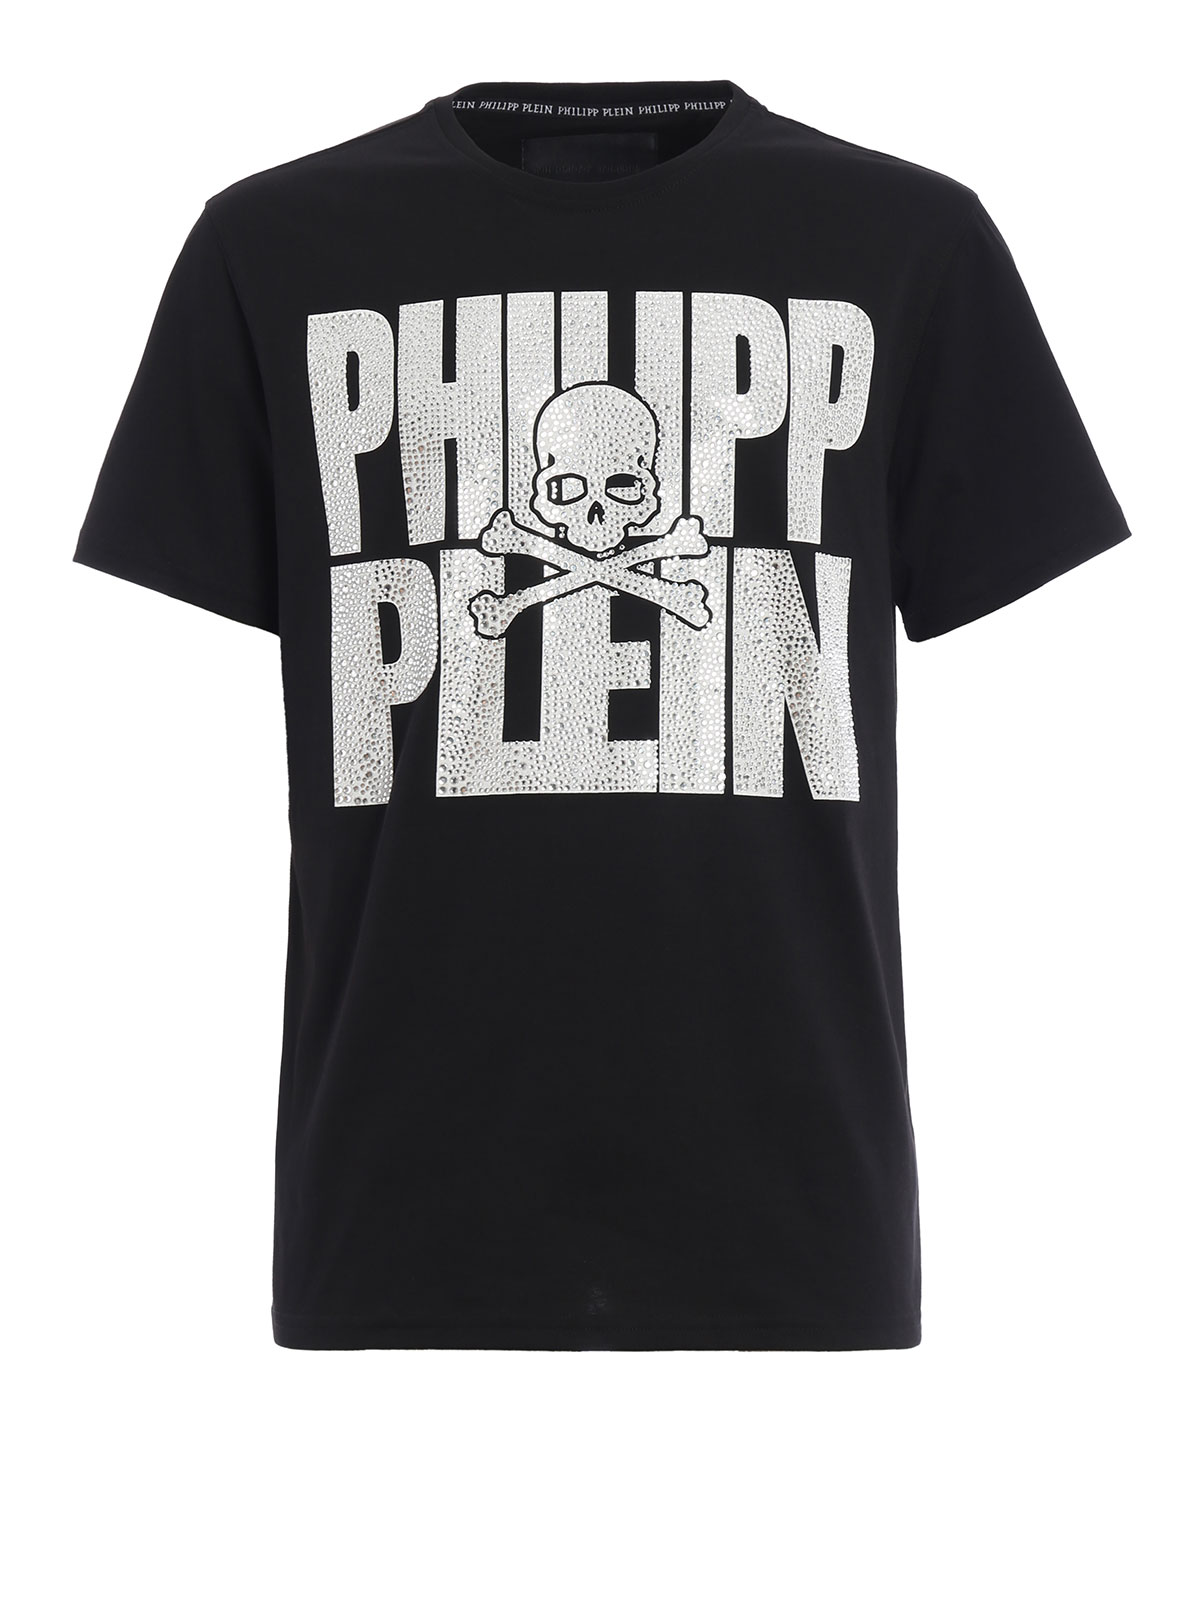 yoriko embellished t shirt by philipp plein t shirts ikrix. Black Bedroom Furniture Sets. Home Design Ideas